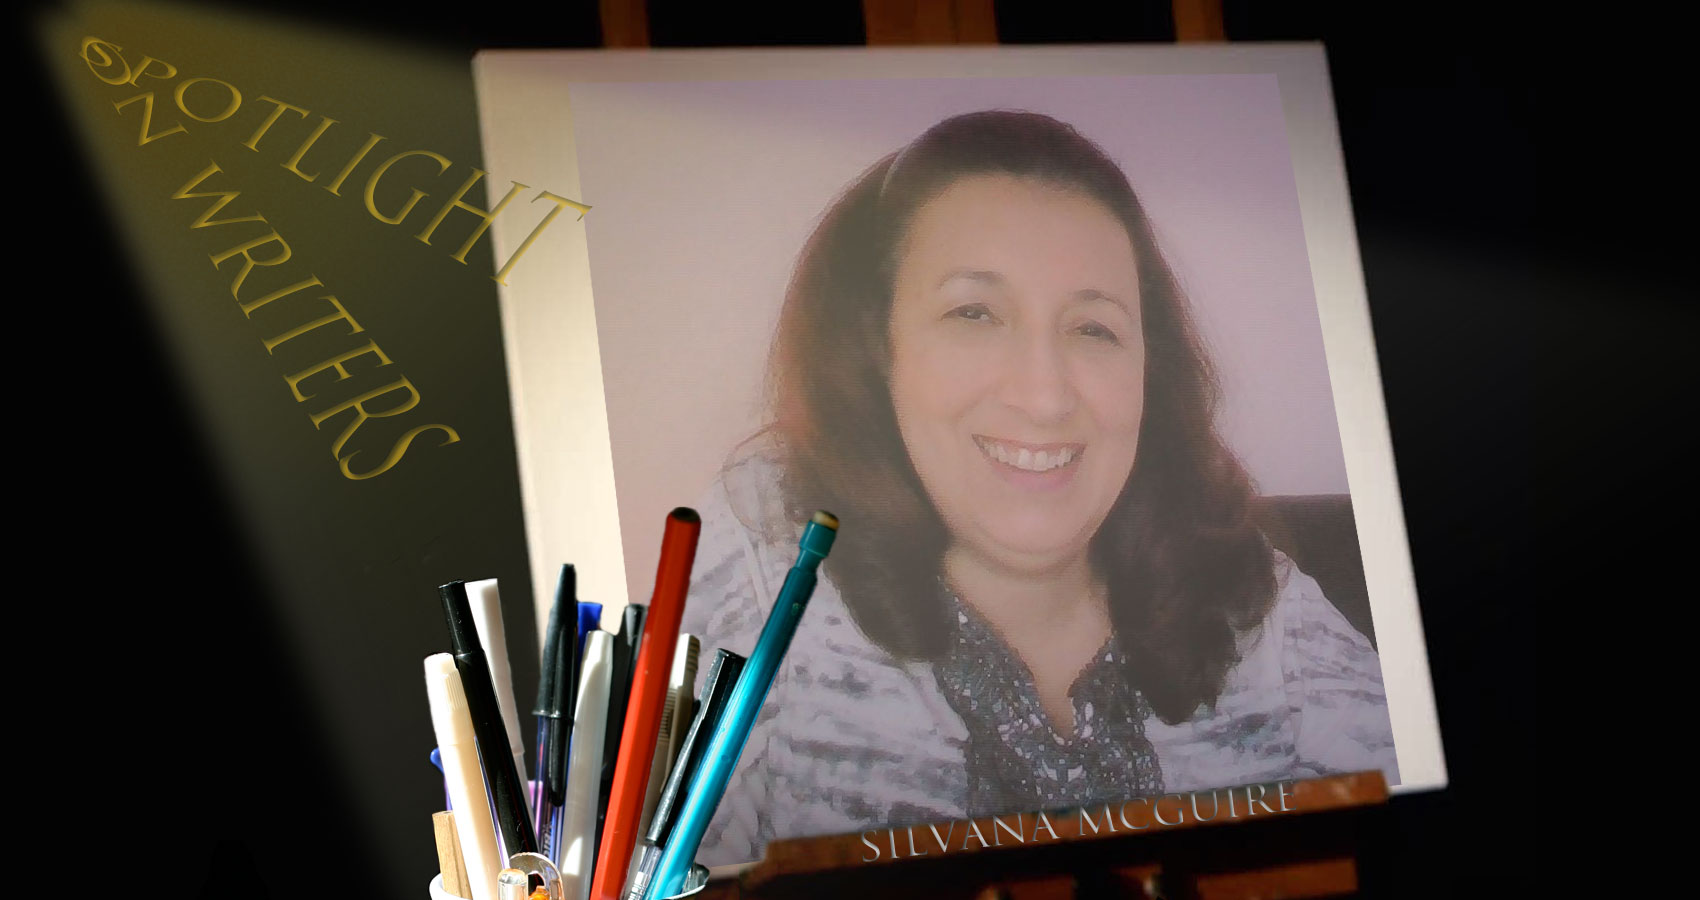 Spotlight On Writers - Silvana McGuire, an interview at Spillwords.com